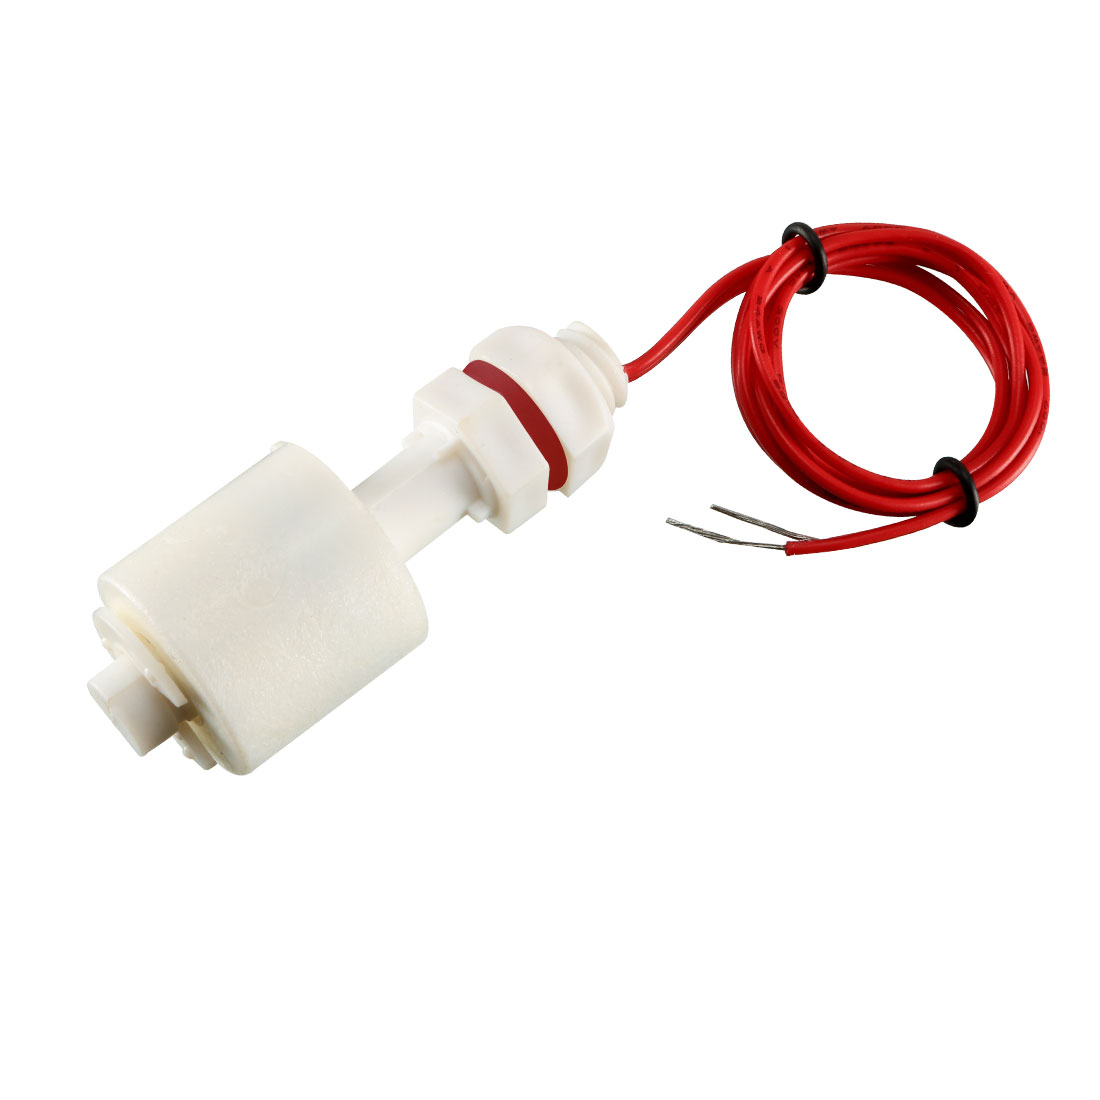 5 Pcs ZP4510 White Plastic Liquid Water Level Sensor Float Floating Switch